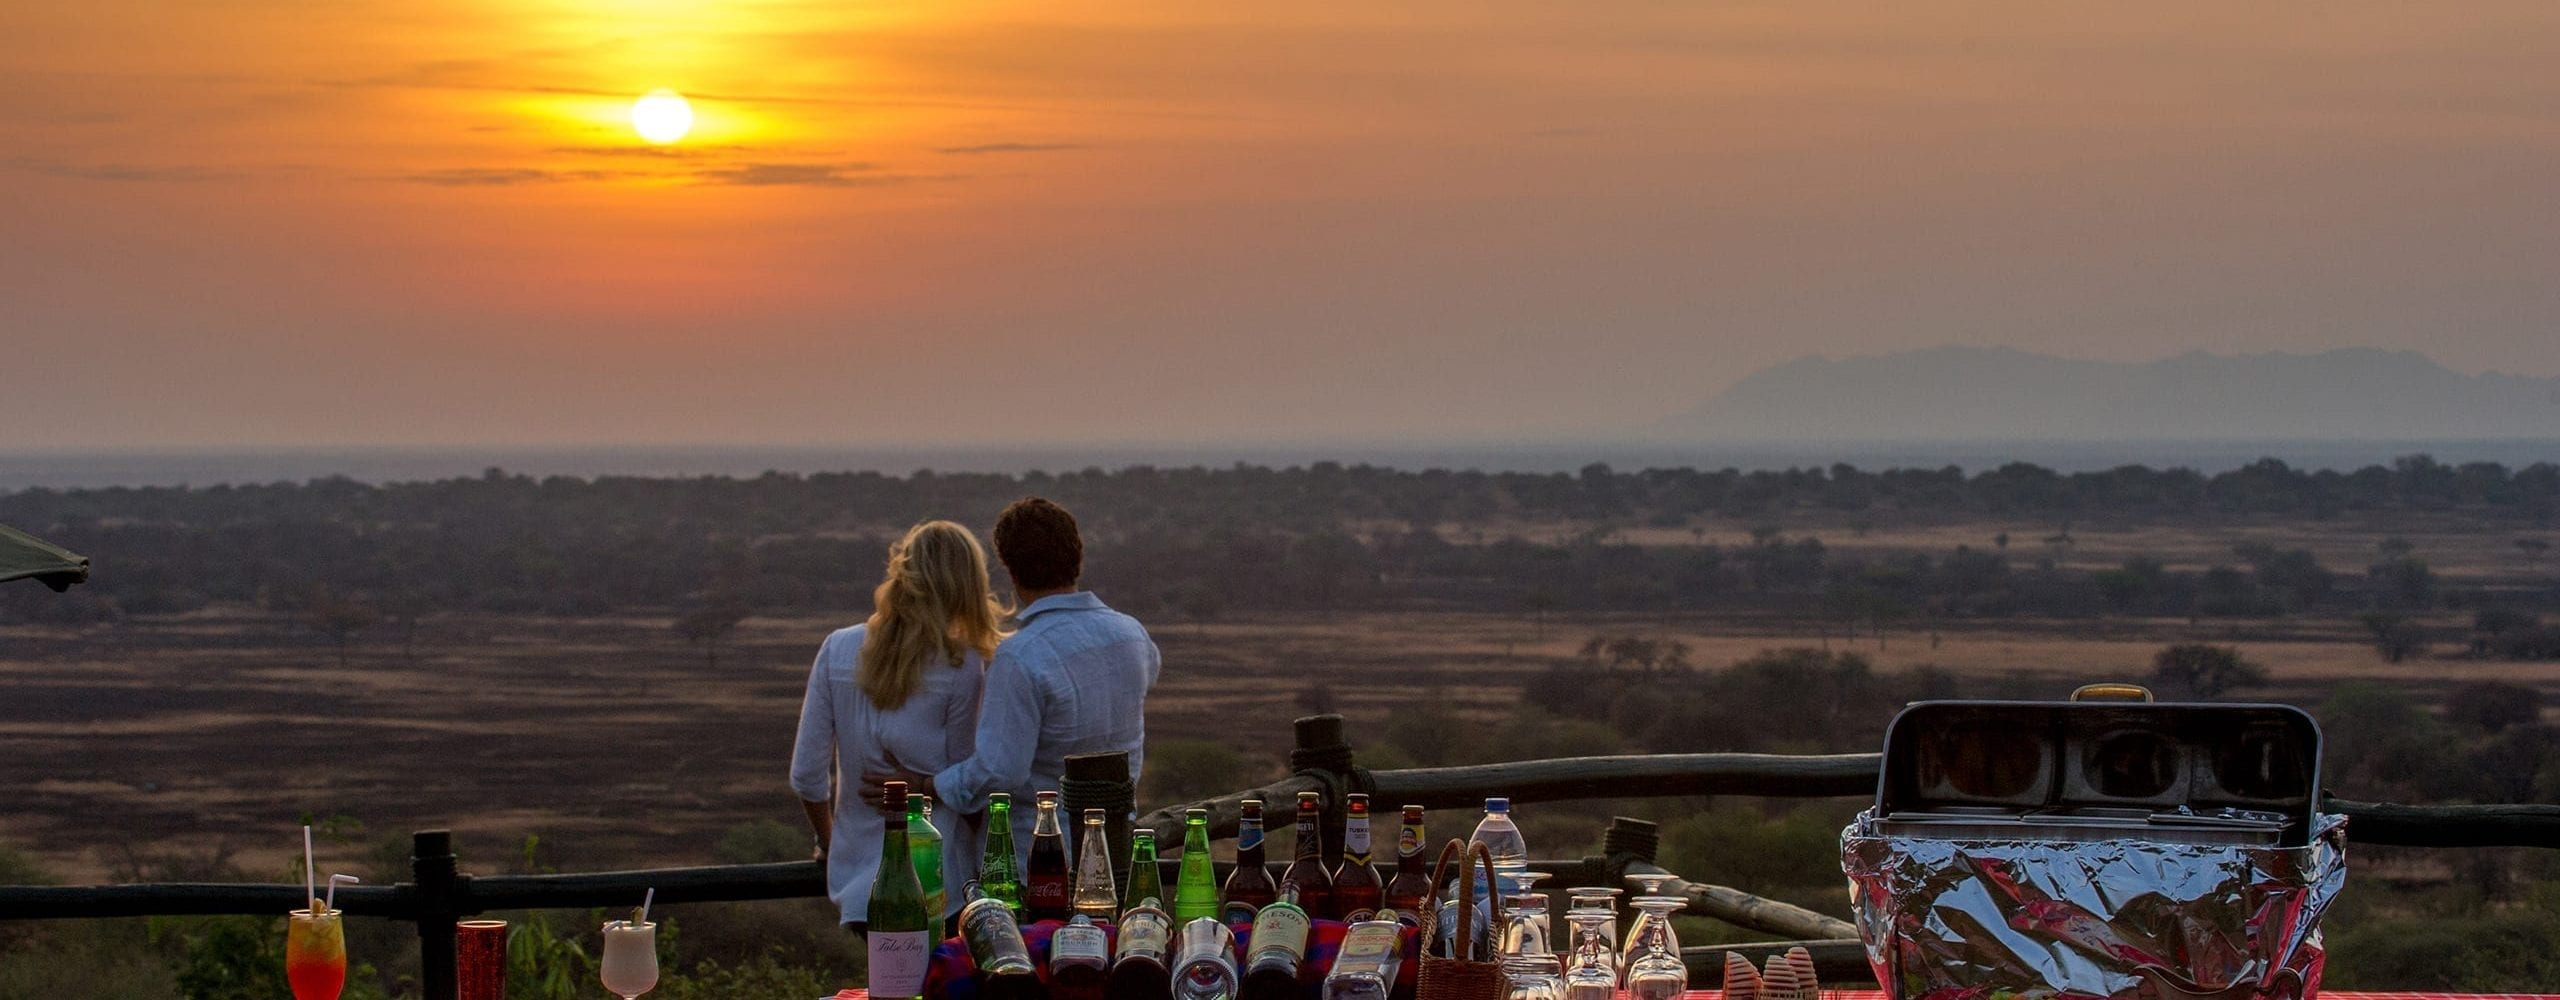 Sundowners are simply magical at Kirawira Serena Camp. © Serena Hotels